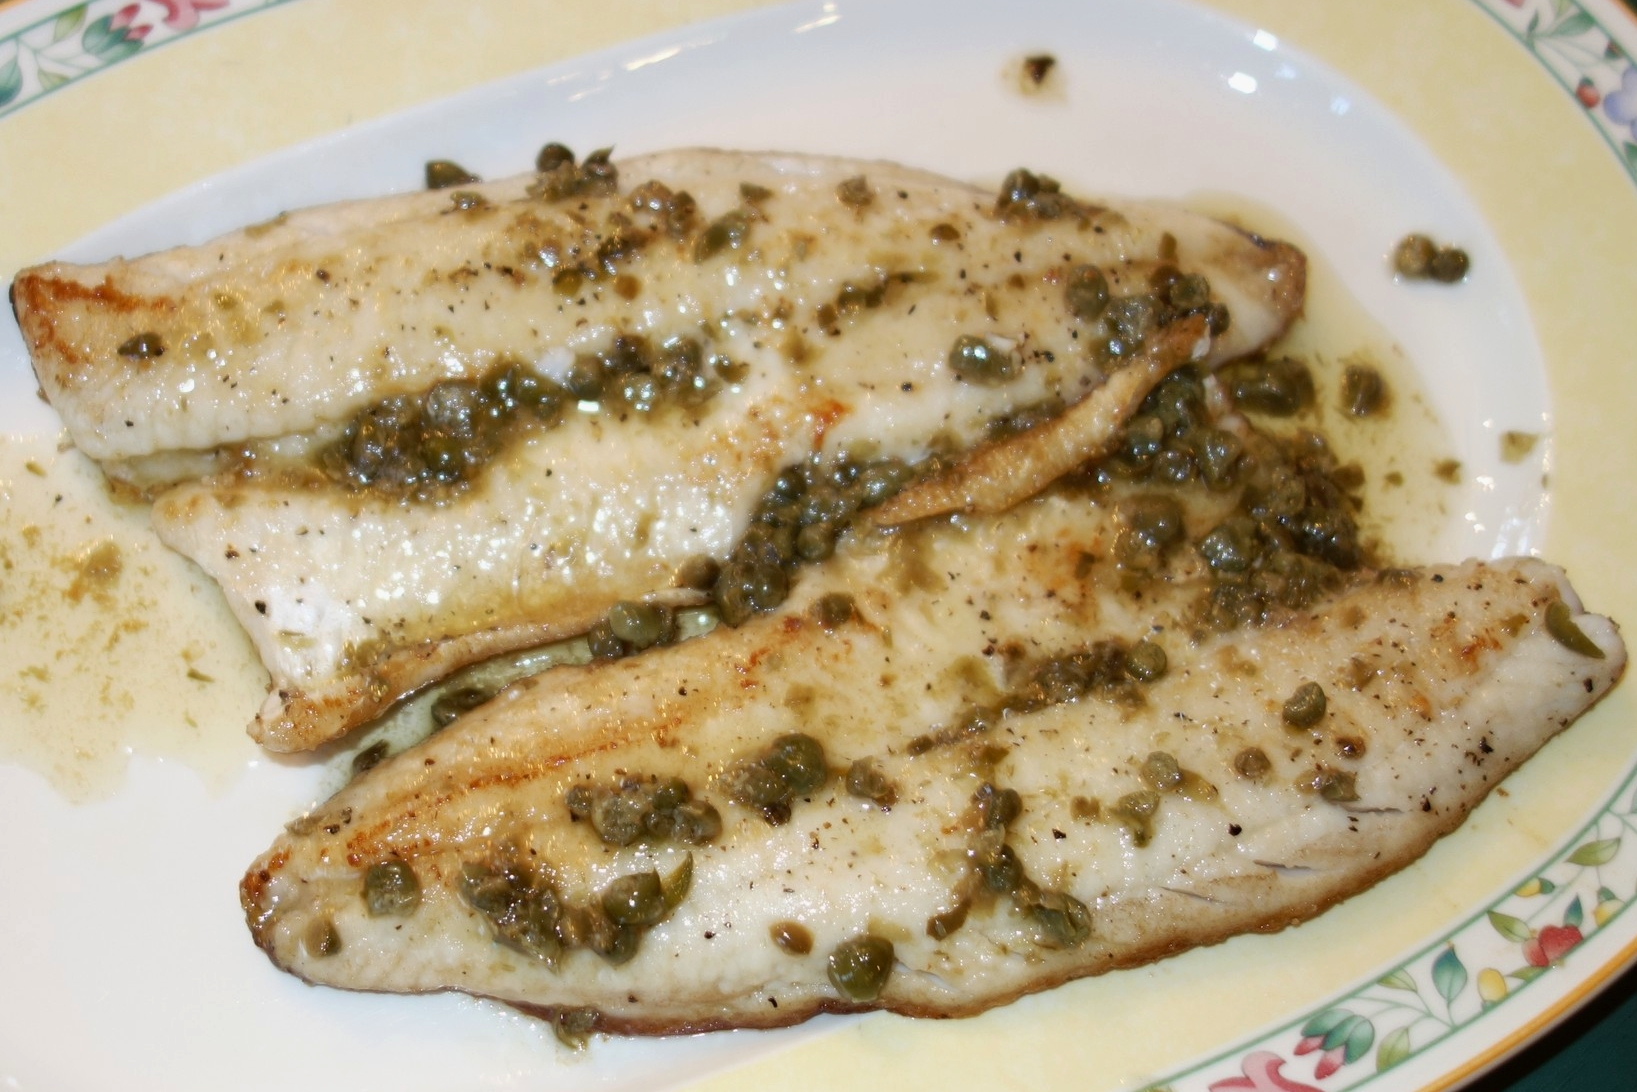 Pan-frying fish with skin-on is not that difficult, and makes a nice change to typical dinner fare.